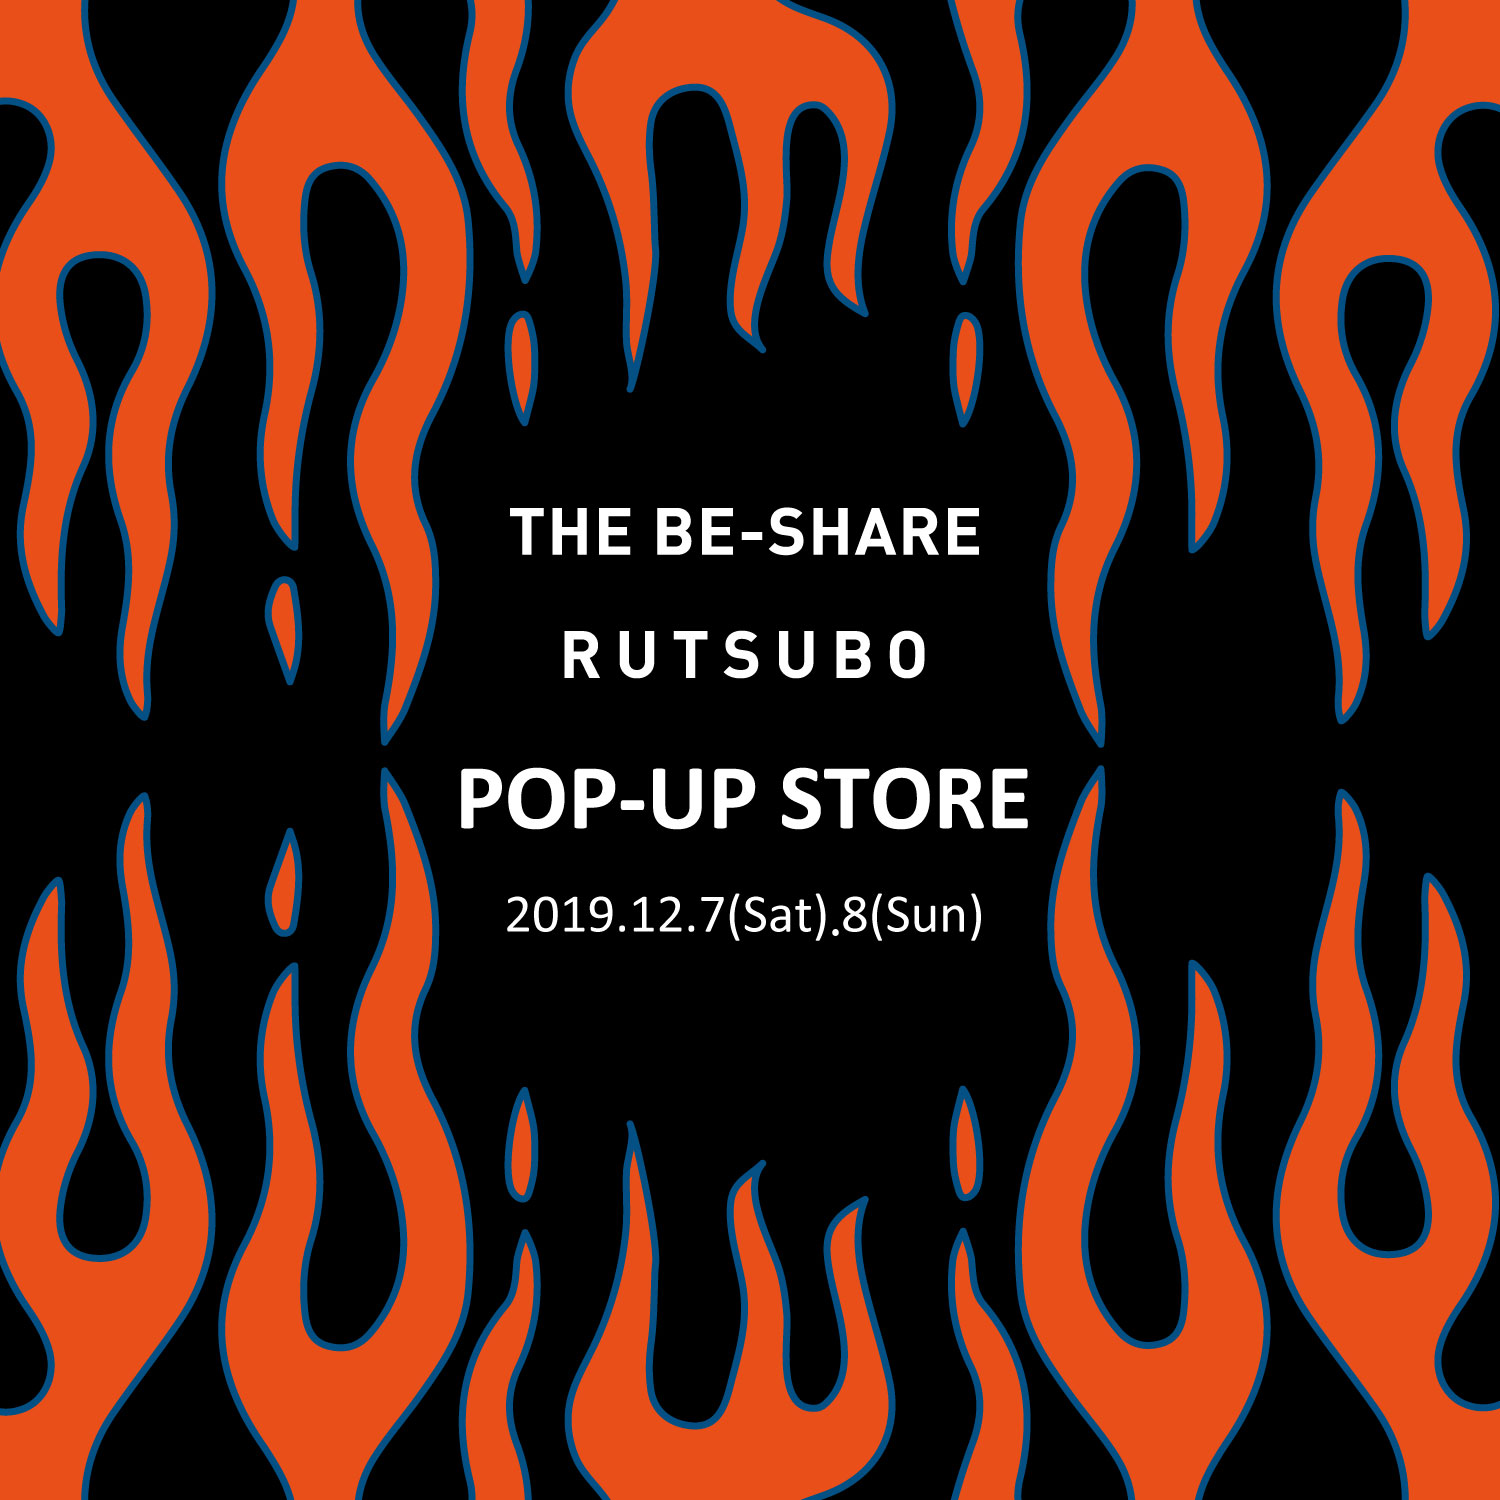 TheBESHARE_RUTSUBO_POPUP修正